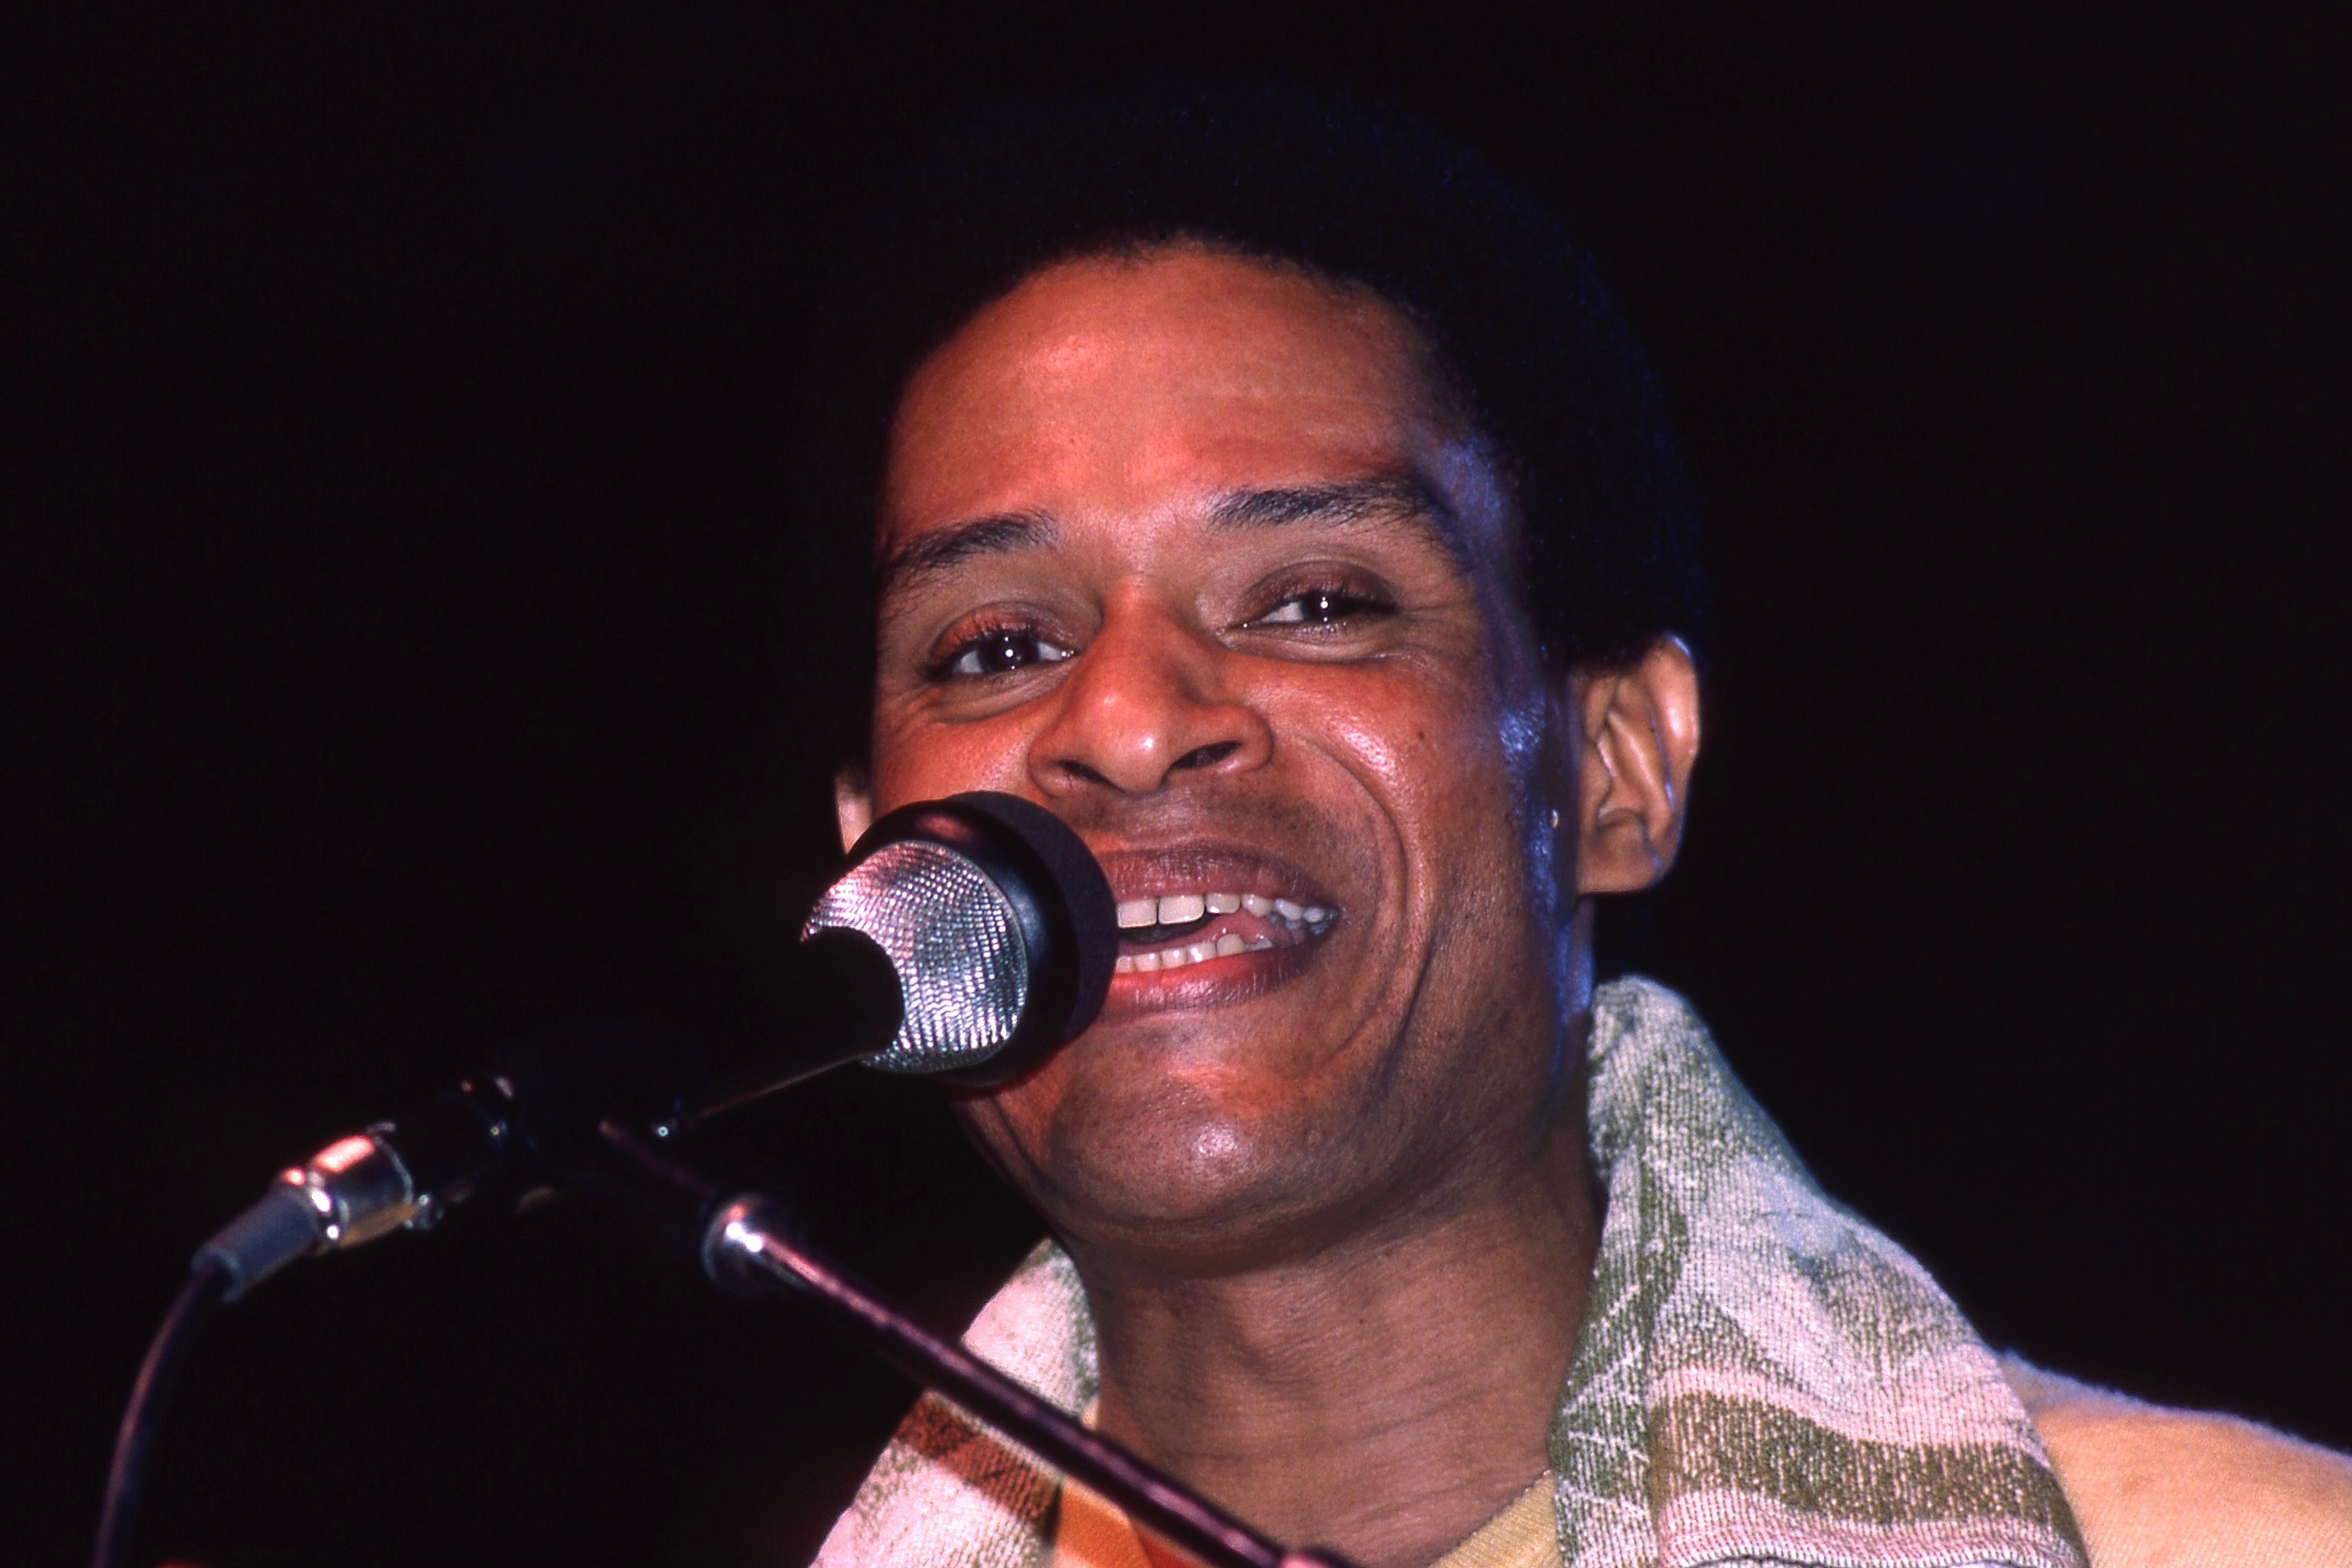 The 79-year old son of father (?) and mother(?) Al Jarreau in 2019 photo. Al Jarreau earned a  million dollar salary - leaving the net worth at 14 million in 2019